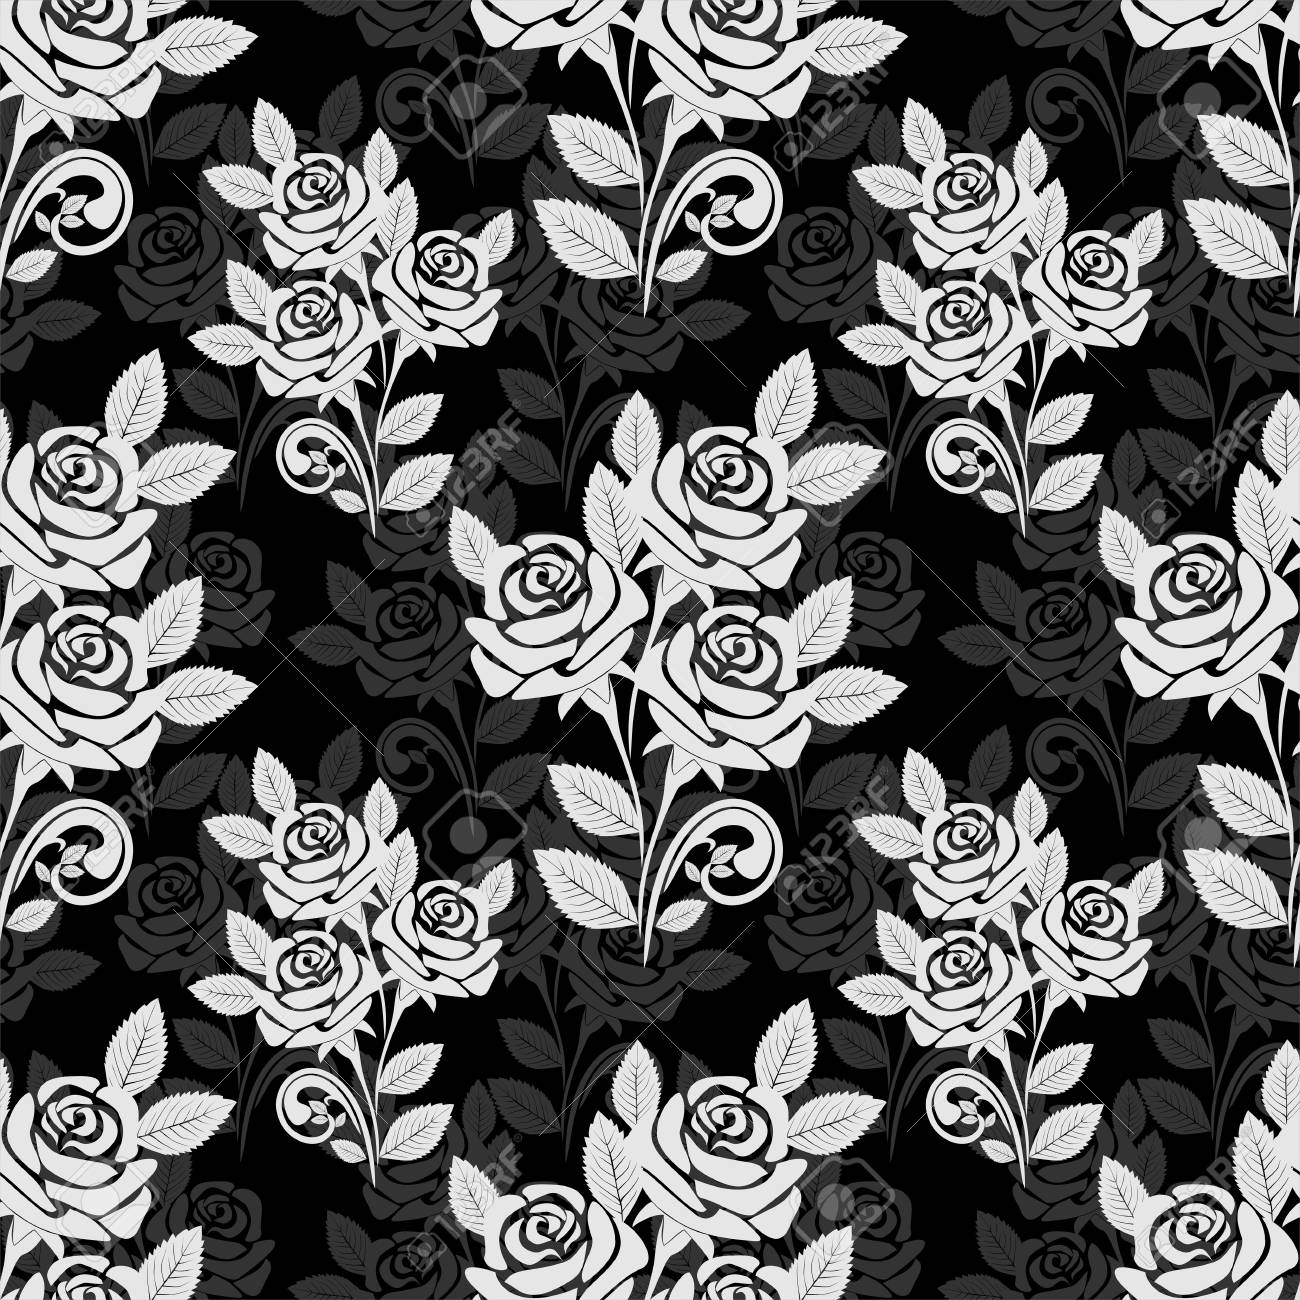 Seamless rose pattern in black-gray colors - 97538959